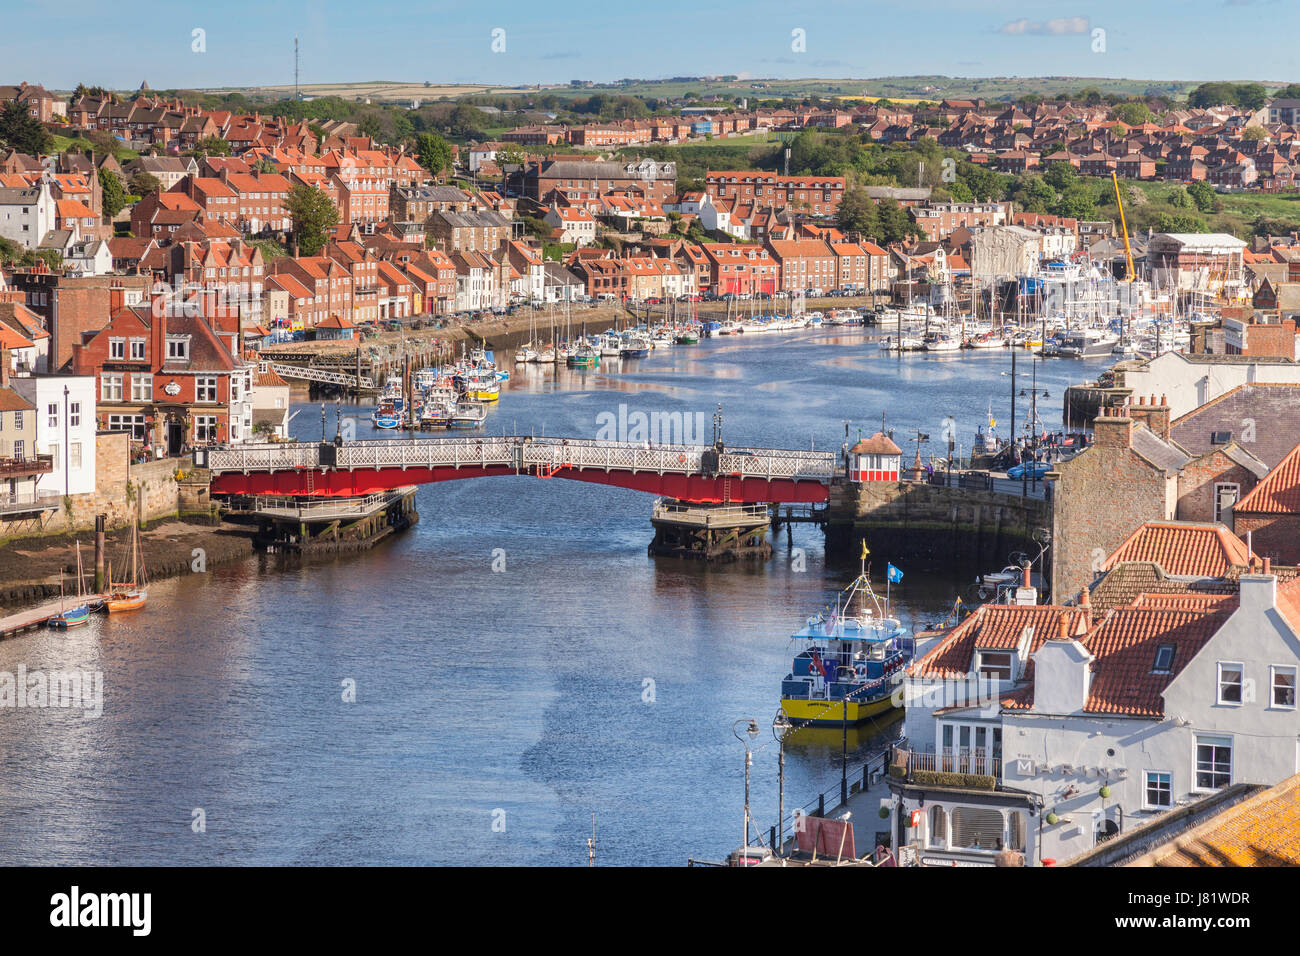 Whitby with the River Esk and the swing bridge, North Yorkshire, England, UK - Stock Image